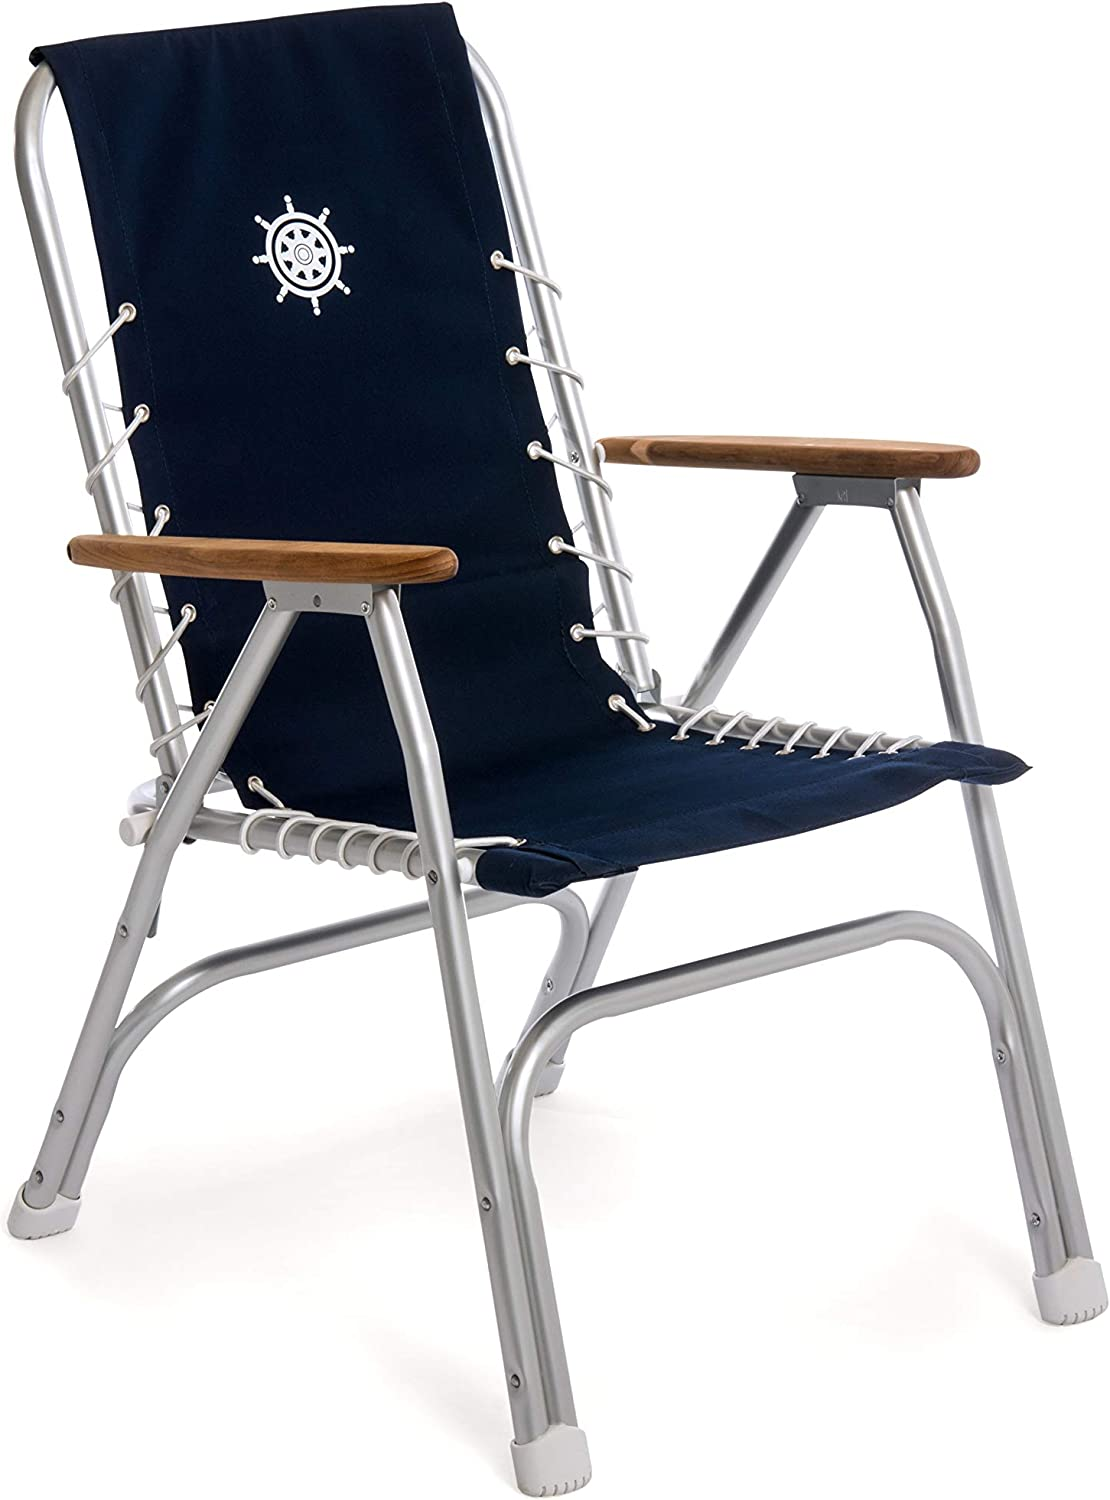 FORMA MARINE Detroit Mall High Ranking TOP16 Back Navy Boat Blue Chair Folding Deck